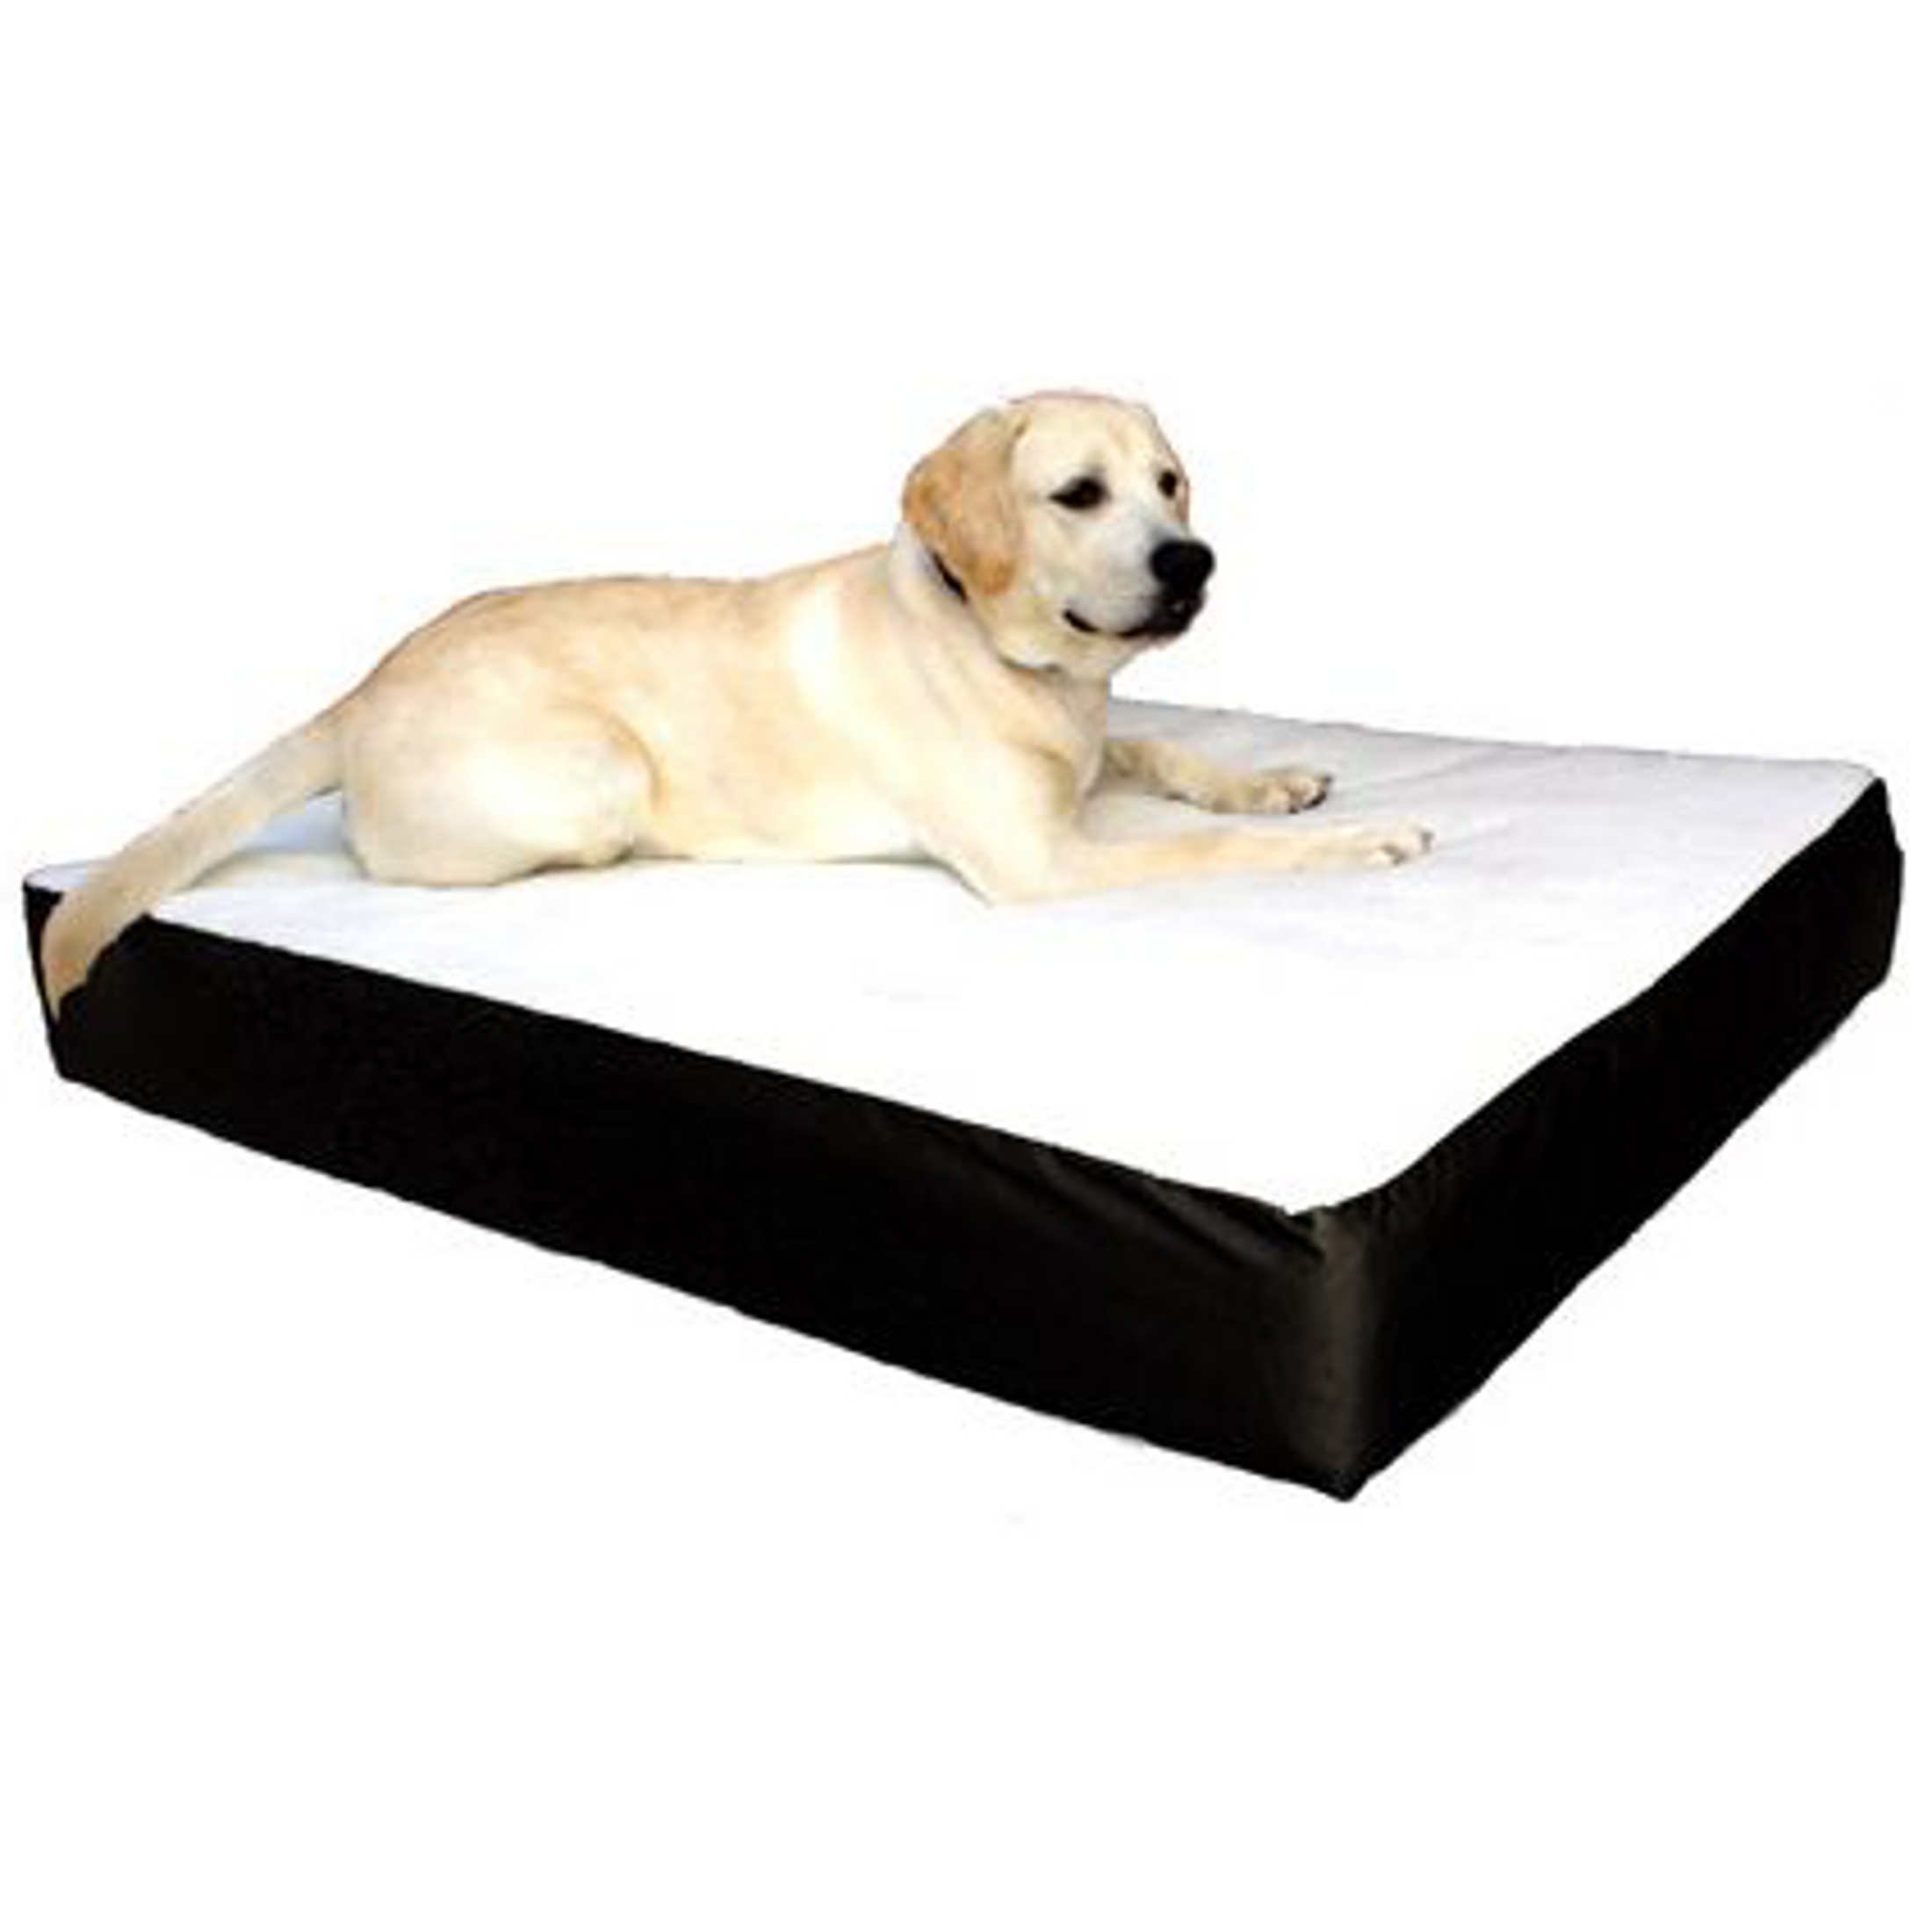 Double Dog Bed Orthopedic Double Pet Bed Arthritic Dog Bed Lambert Vet Supply